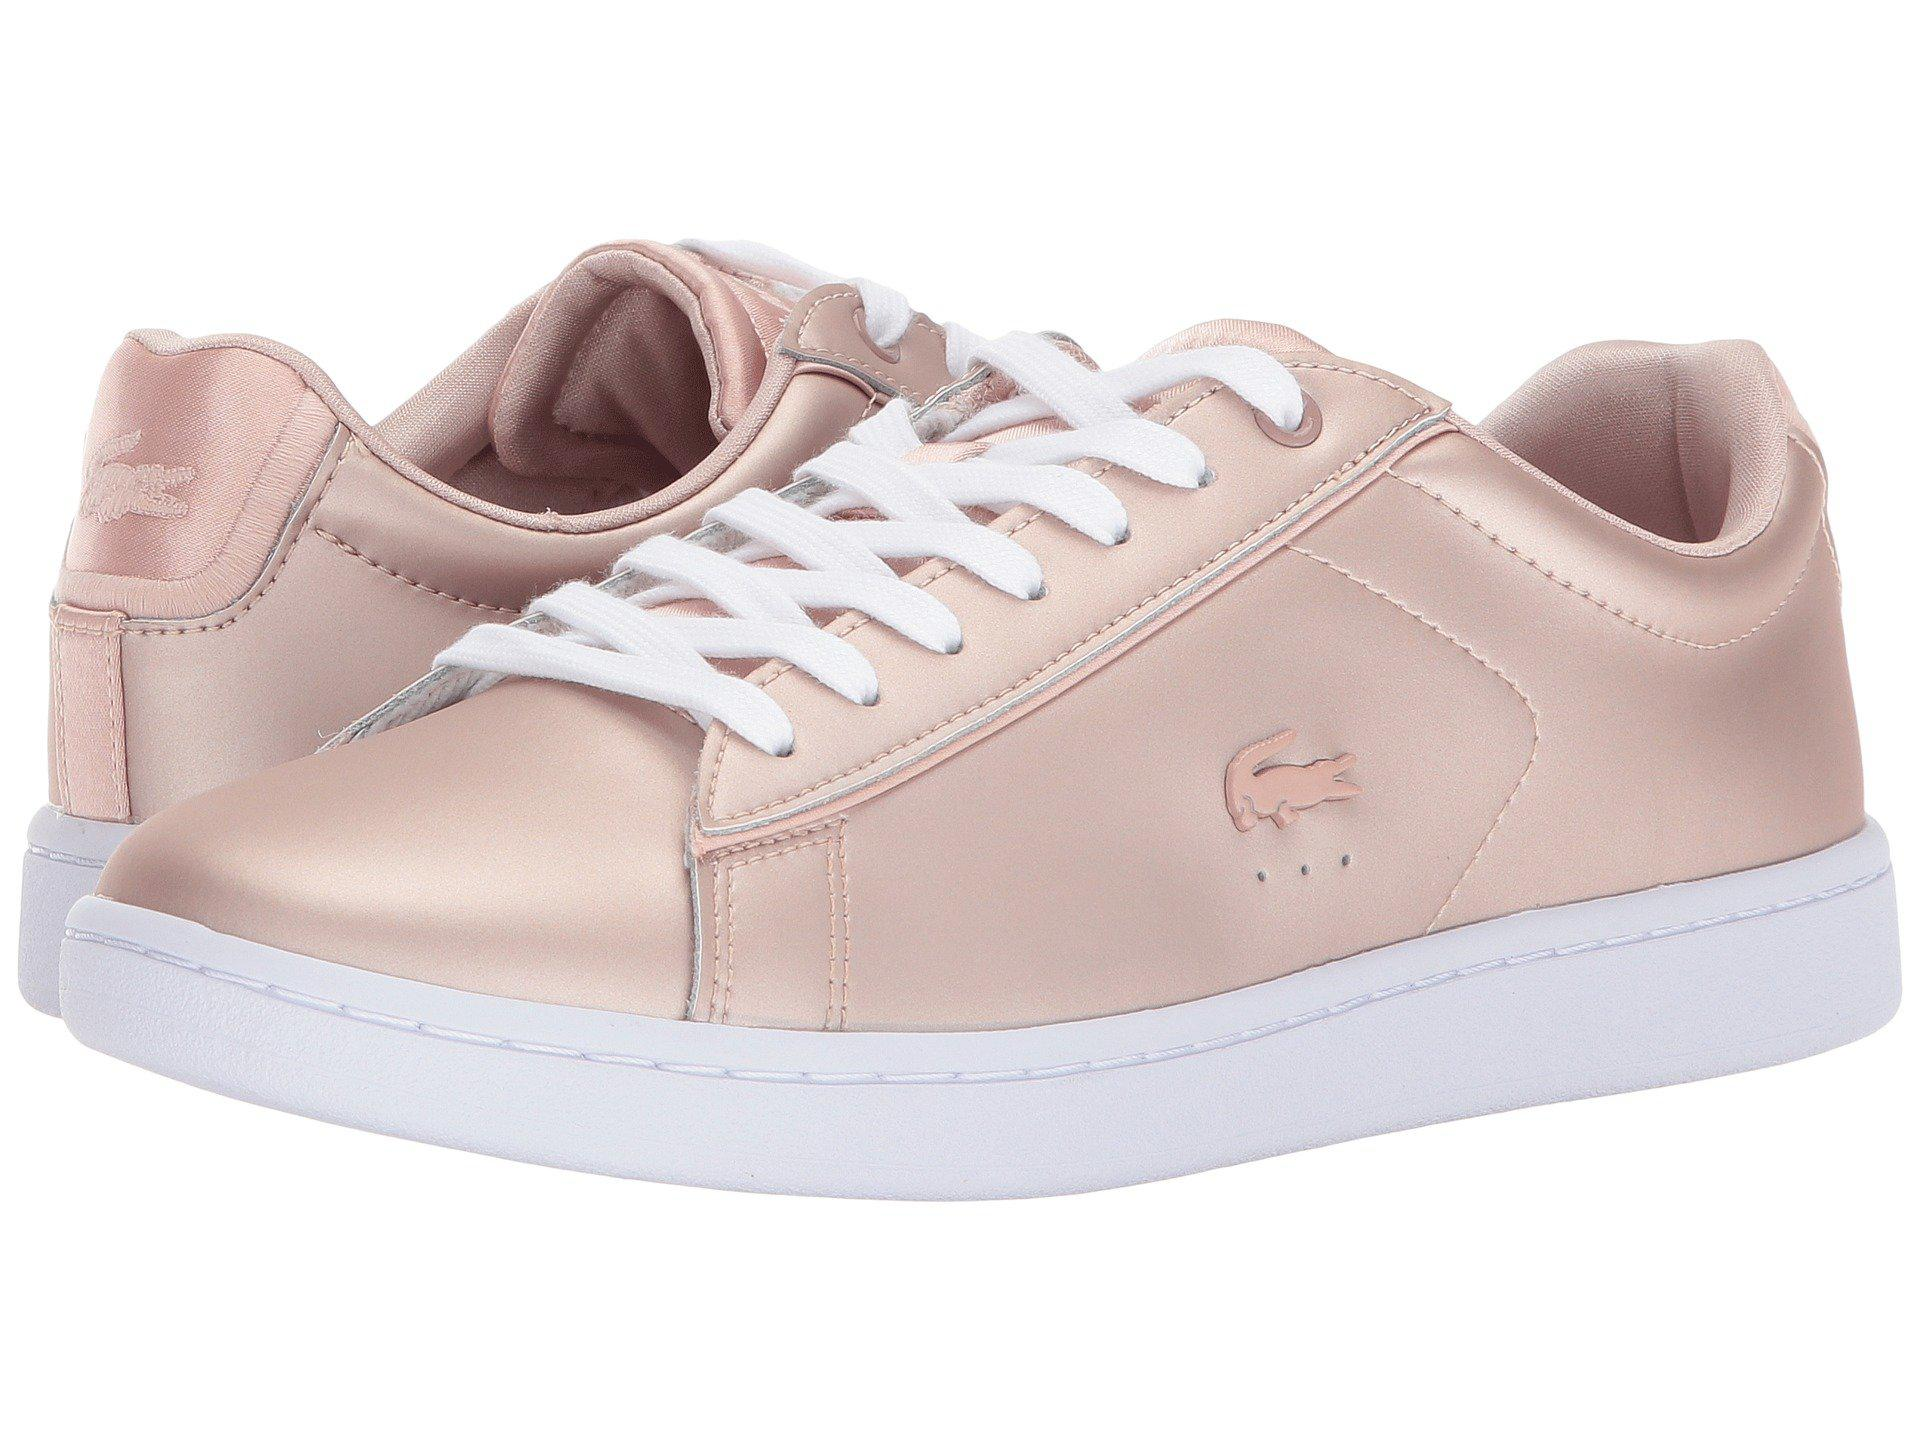 Lacoste Leather Carnaby Evo 118 7 in